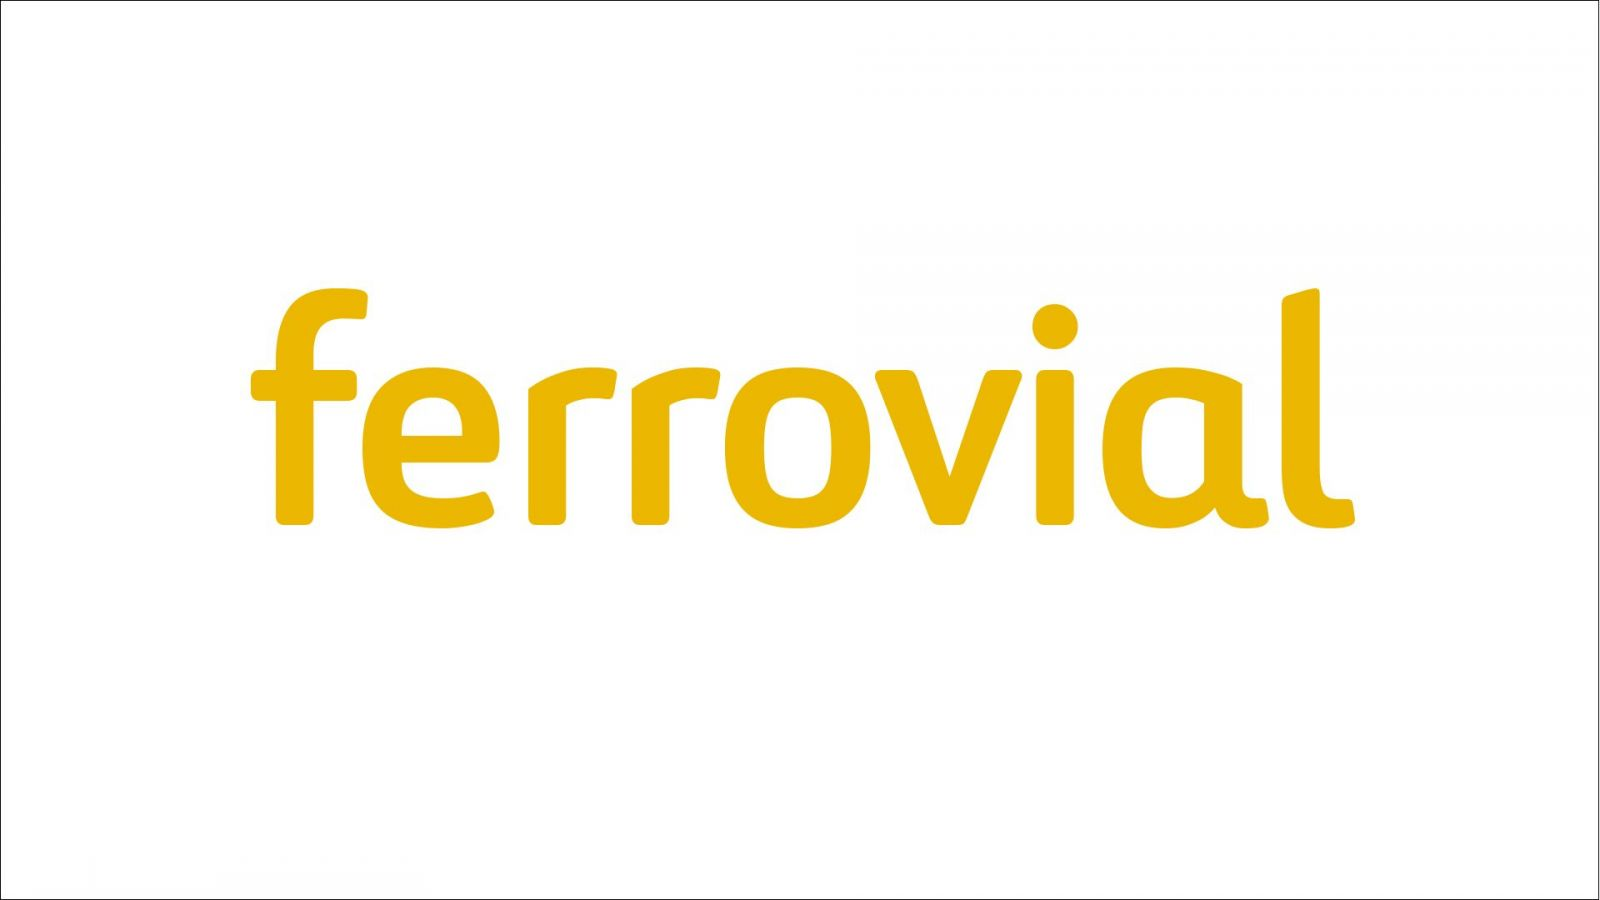 Ferrovial, S.A.